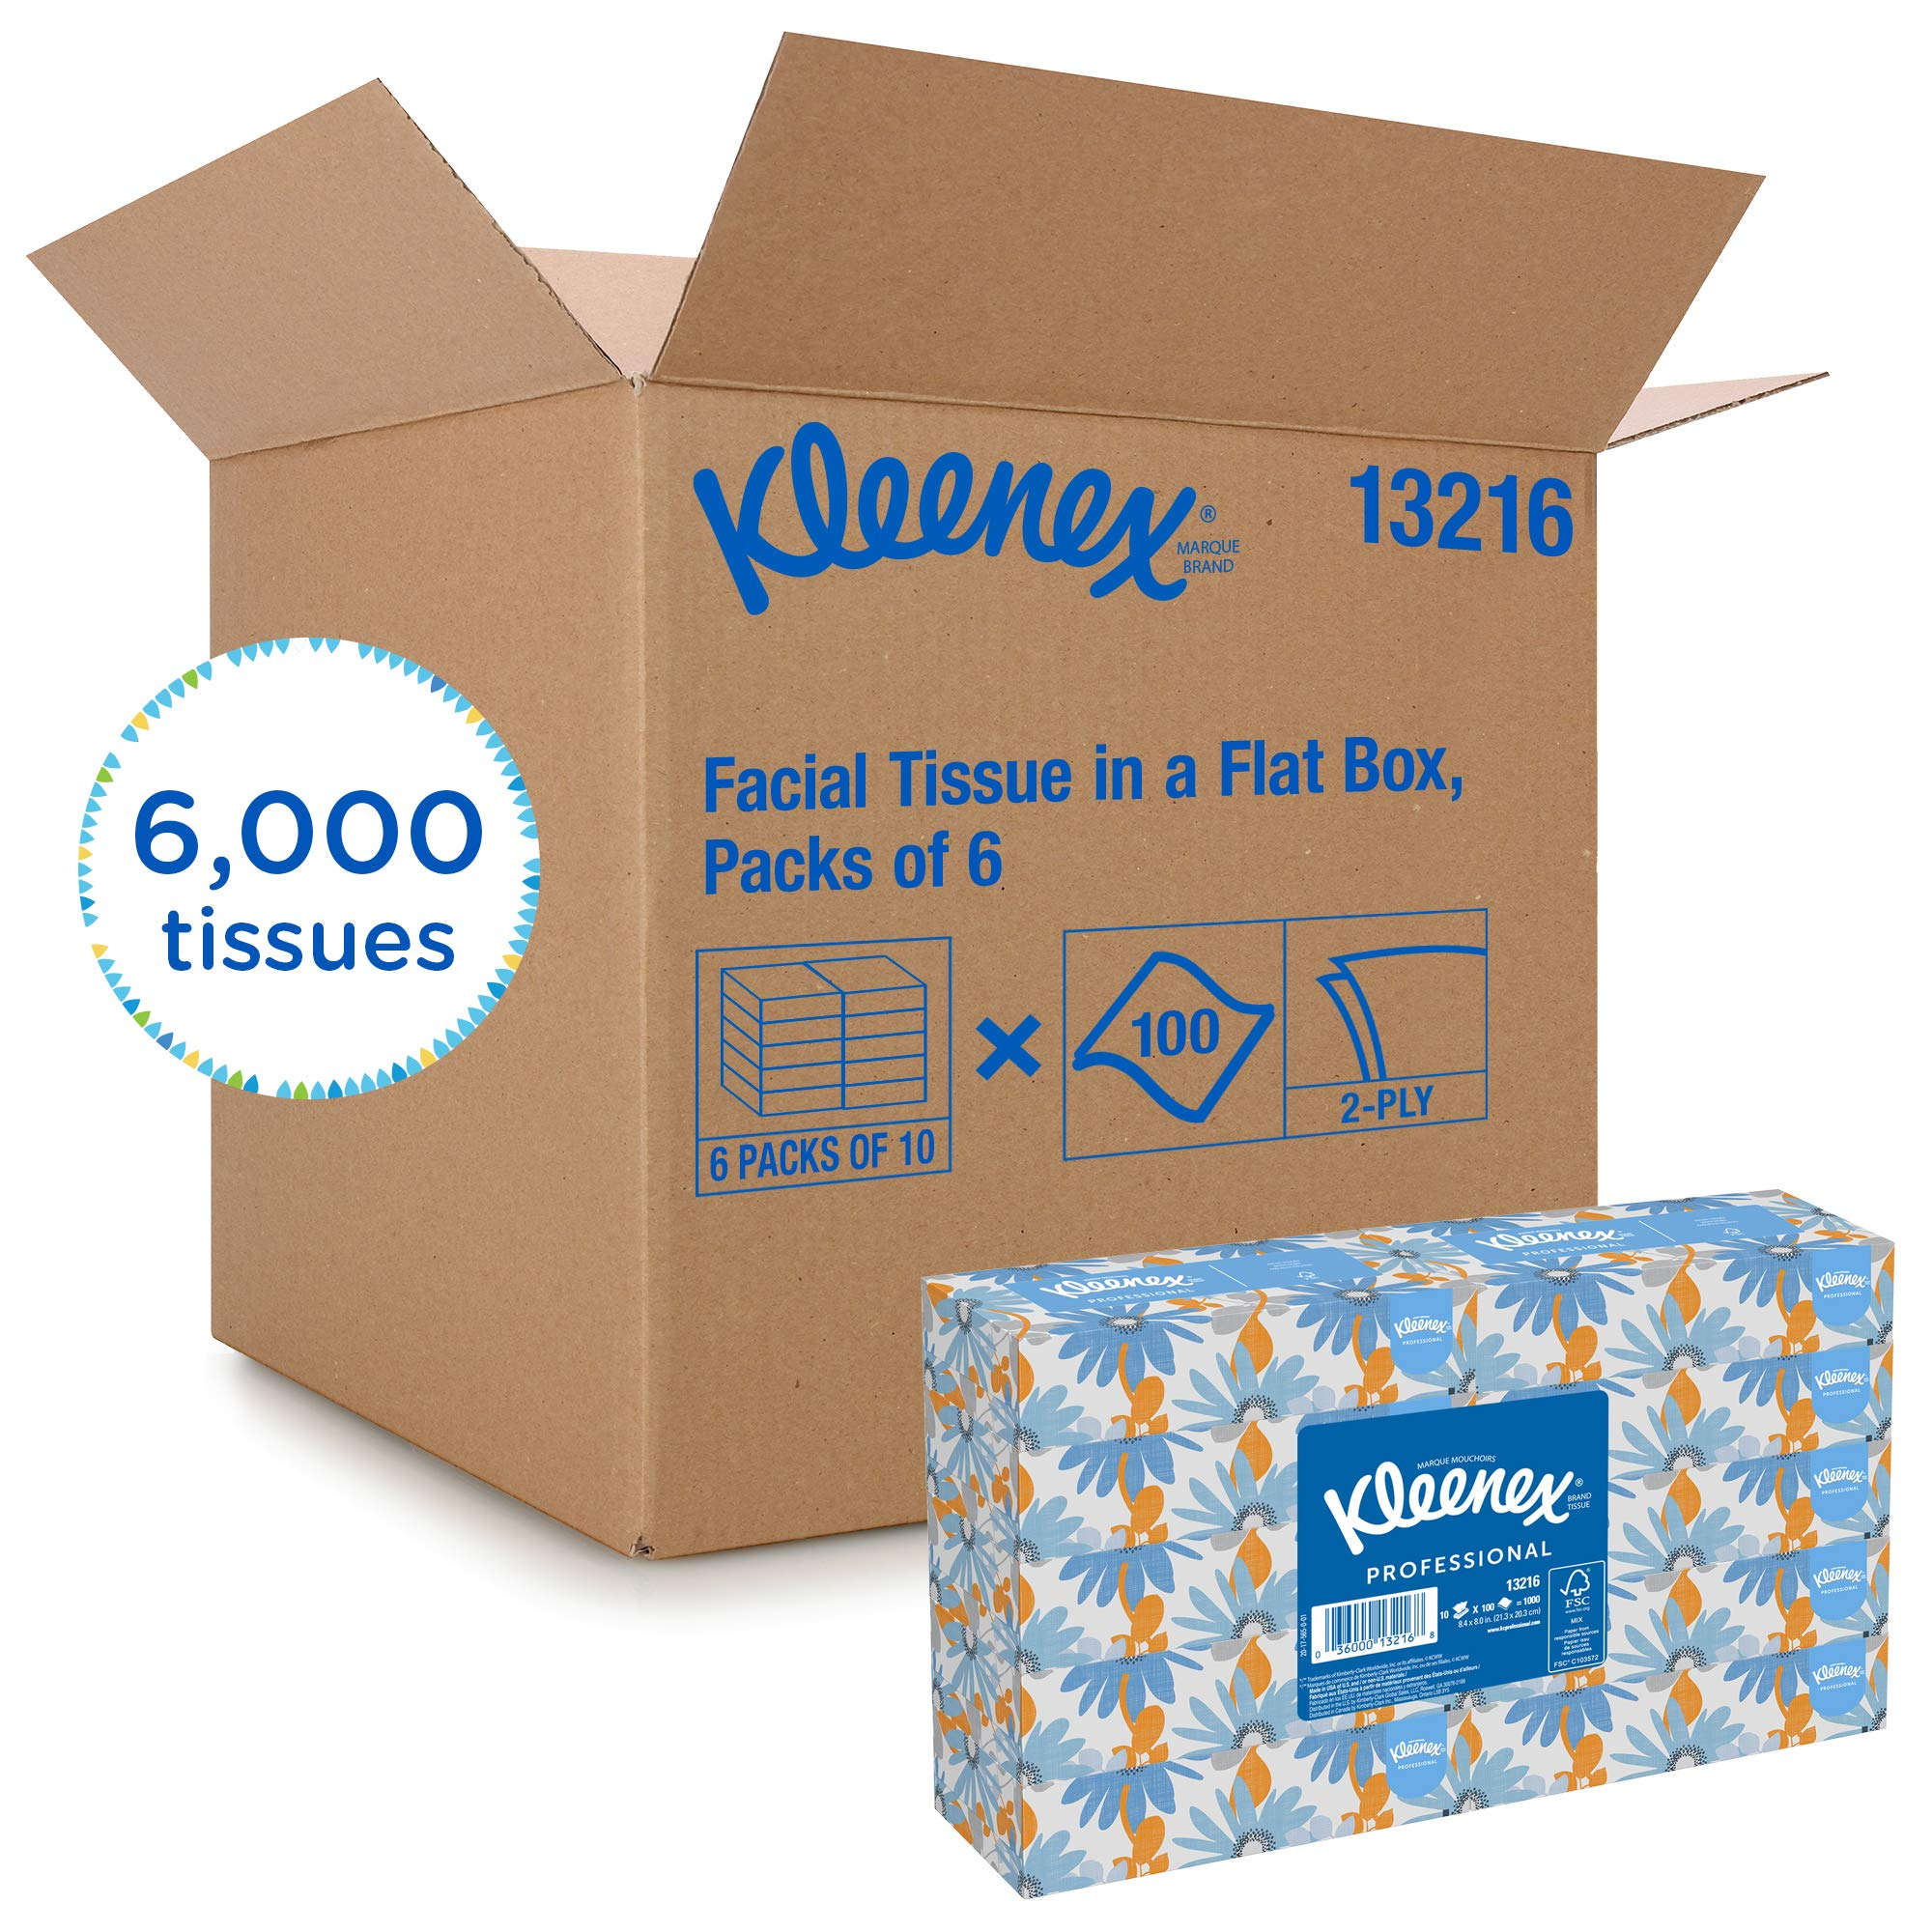 Kleenex Professional Facial Tissue for Business (13216), Flat Tissue Boxes, 60 Boxes/Case, 100 Tissues/Box by Kimberly-Clark Professional